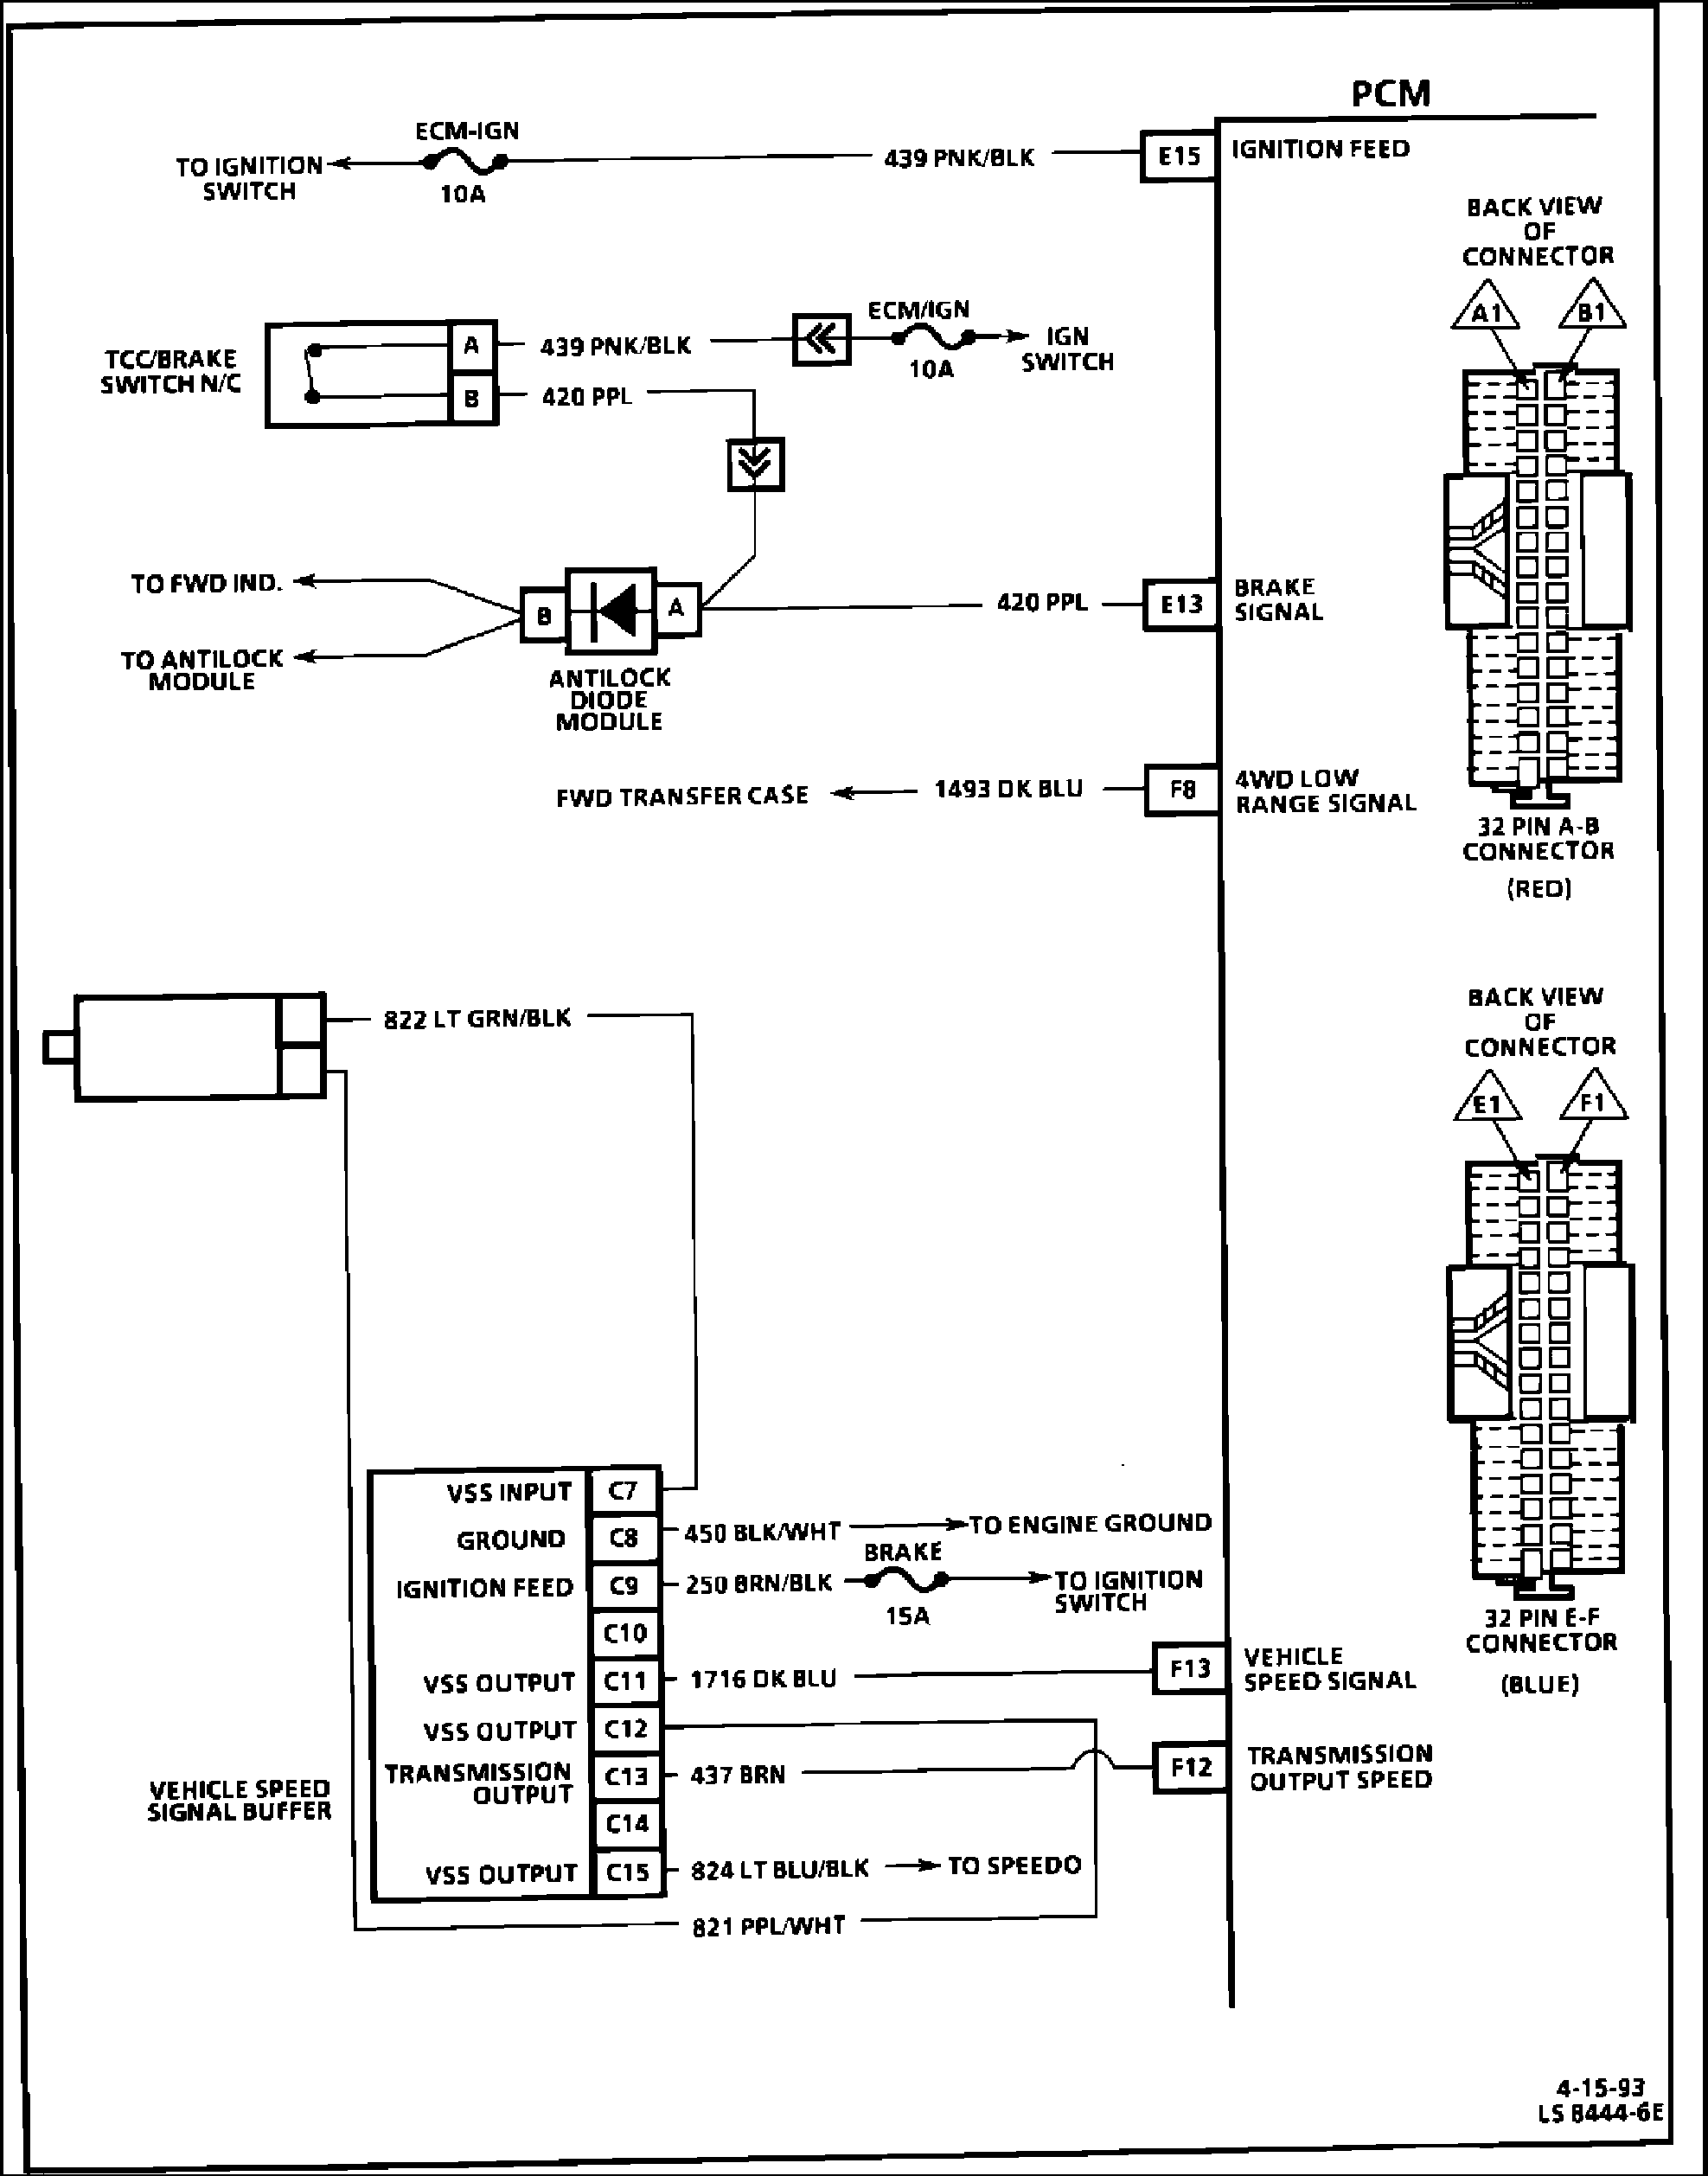 B37d9c8 Monster 4l60e Transmission Wiring Diagram Wiring Resources